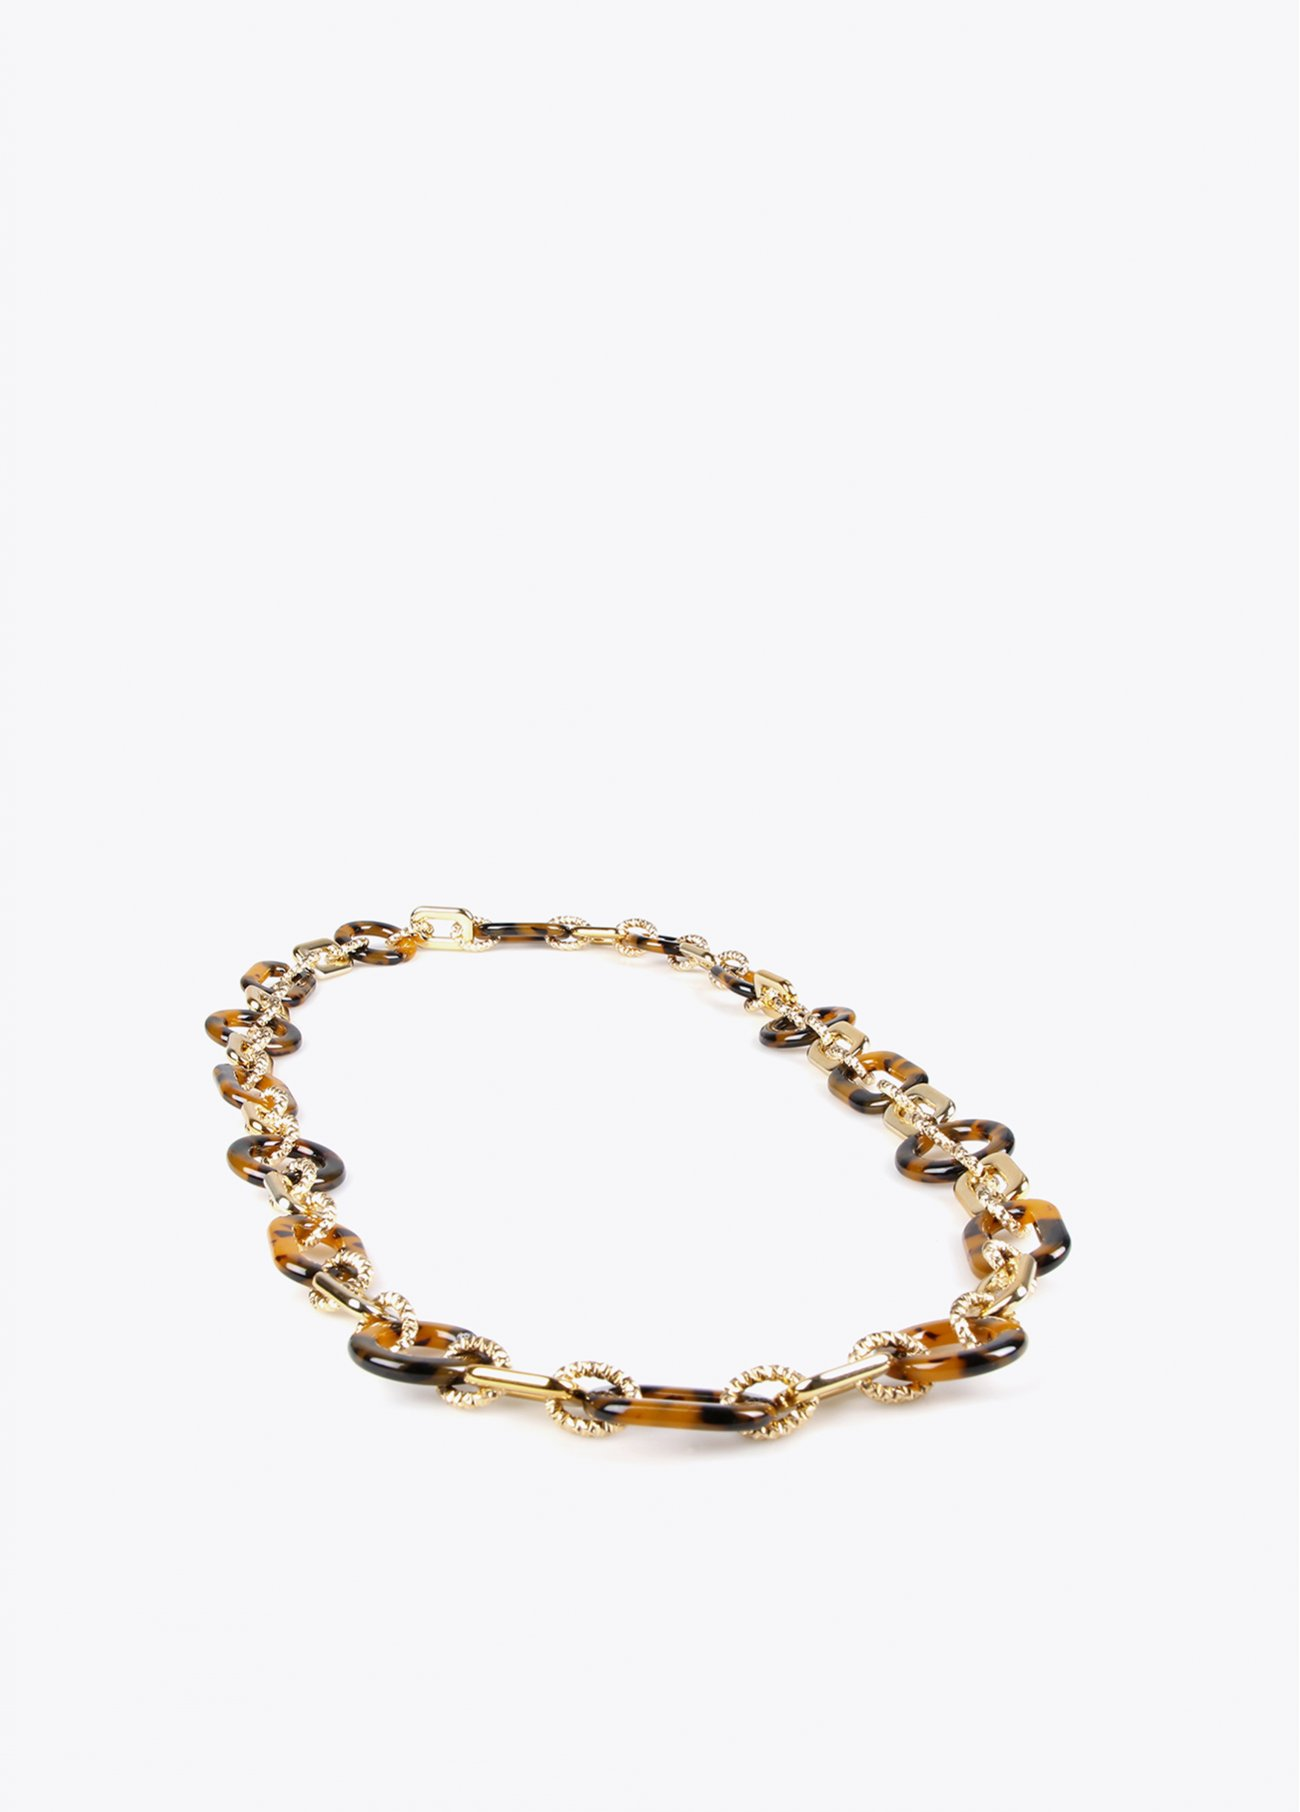 Gold chain necklace with animal print pc